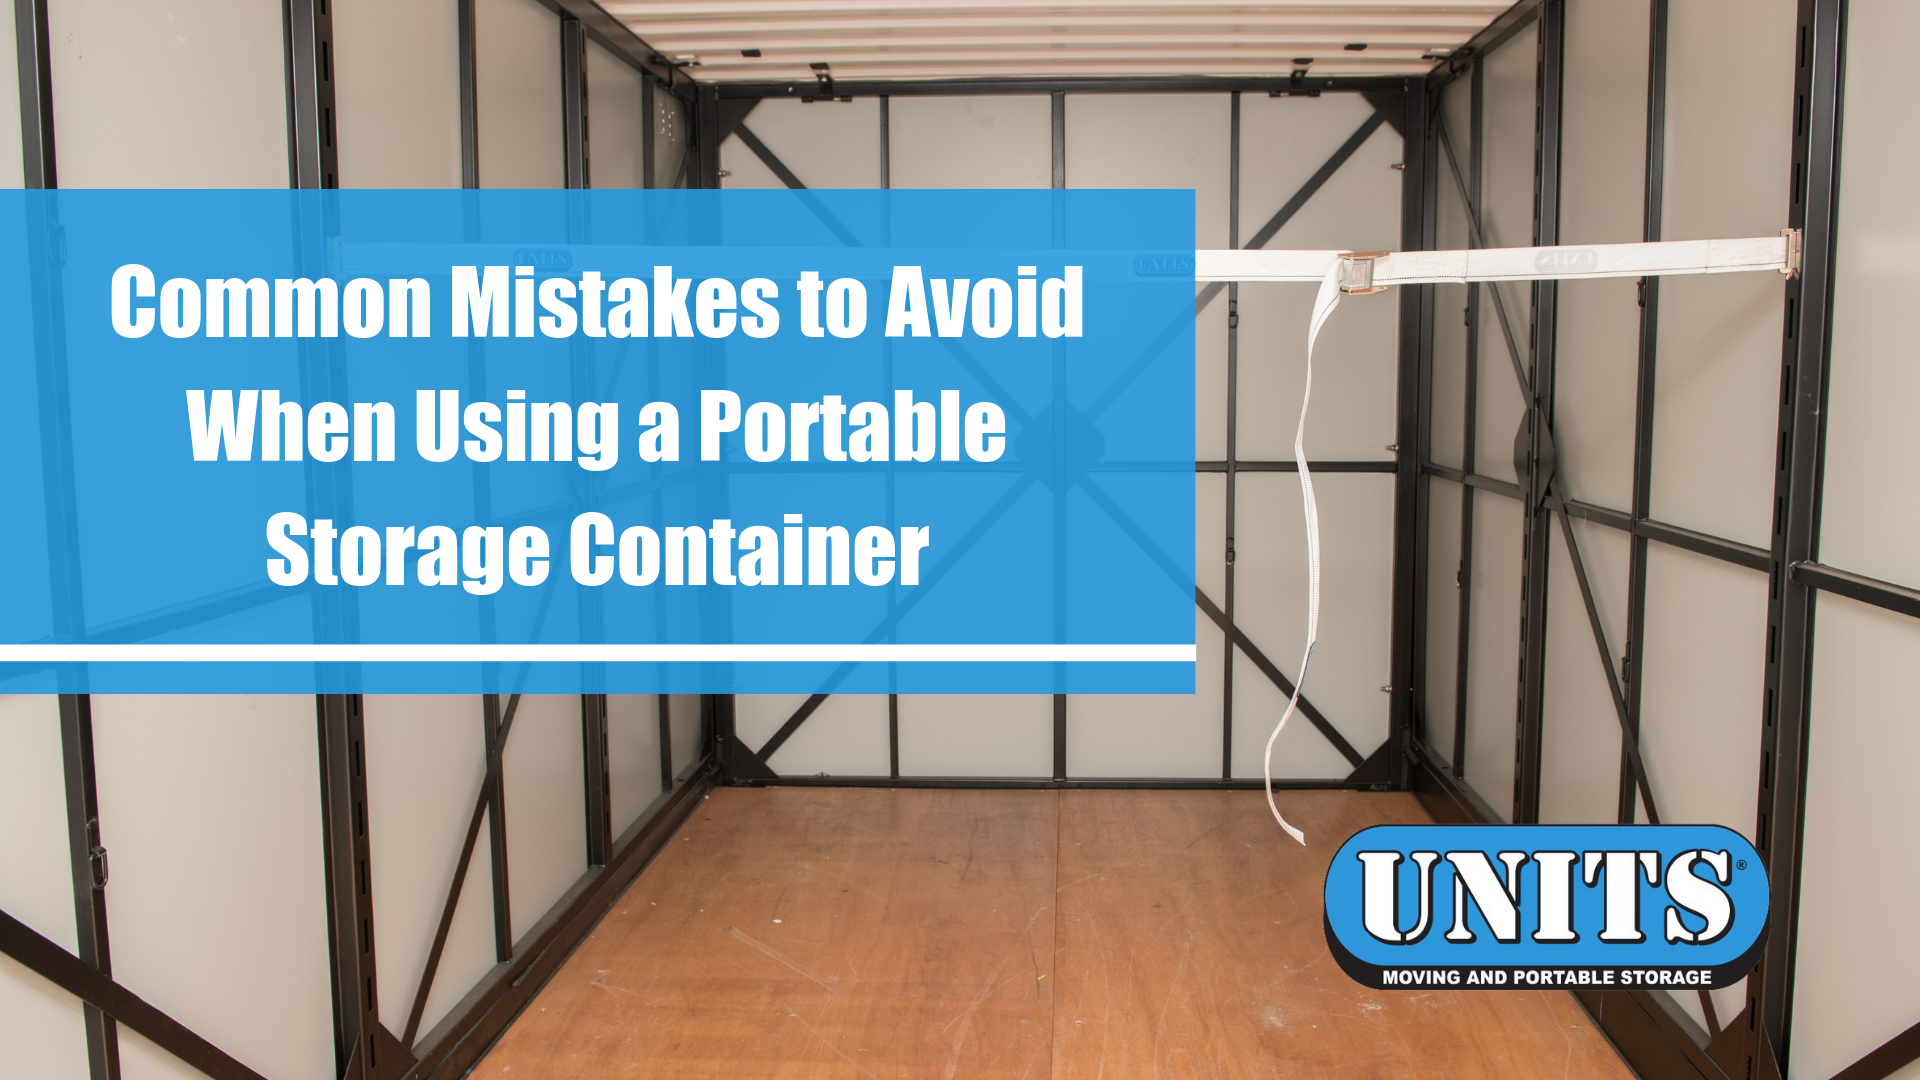 Common Mistakes to Avoid When Using a Portable Storage Container